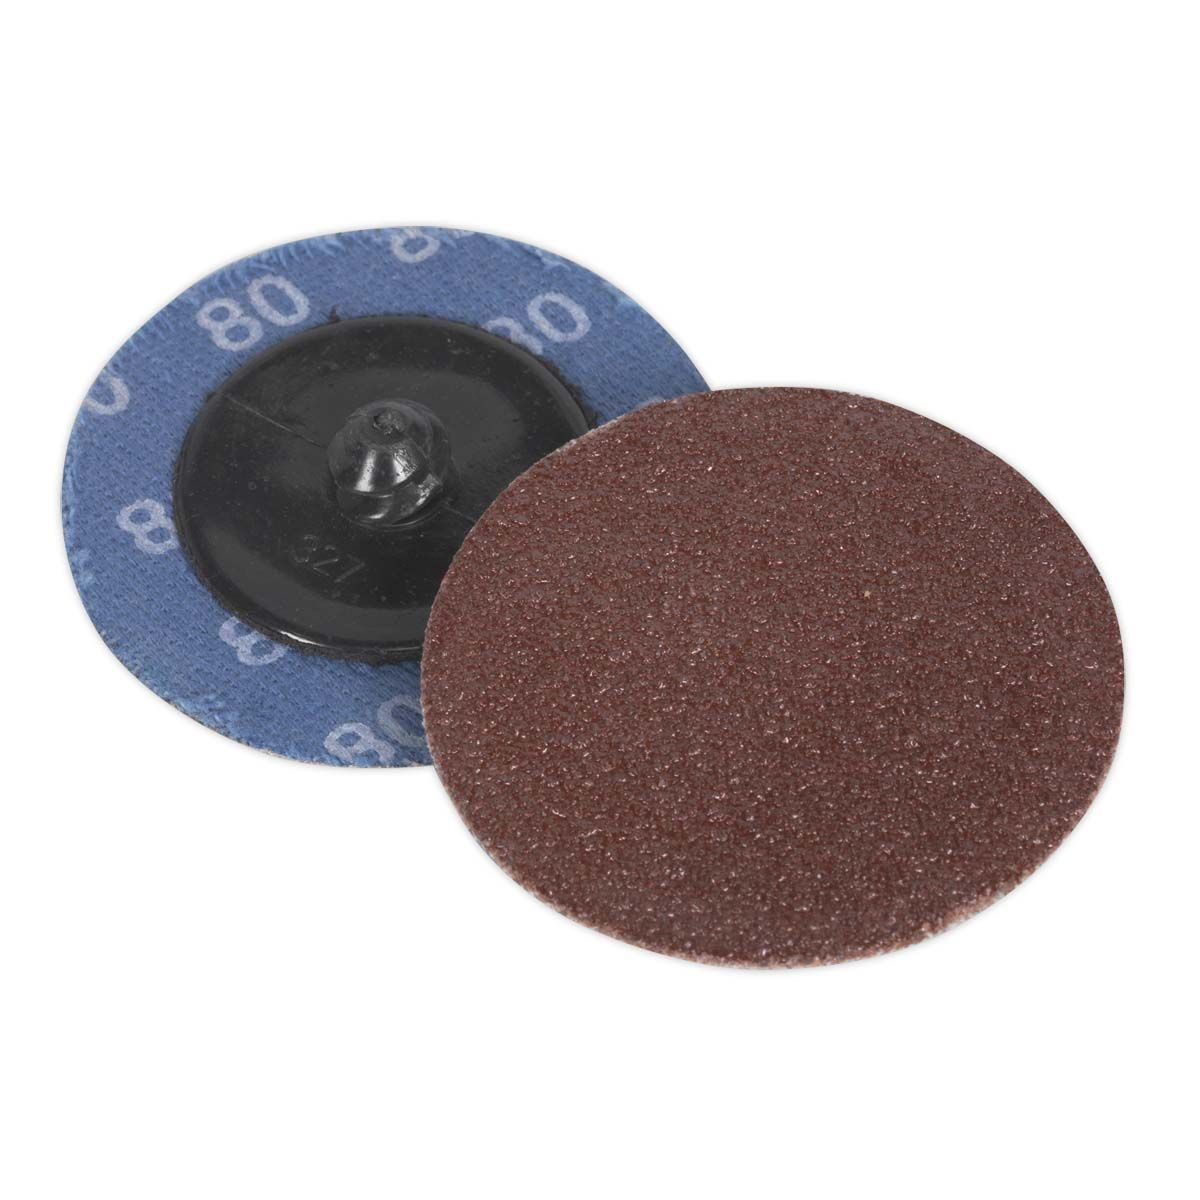 Sealey Quick-Change Sanding Disc Ø50mm 80Grit Pack of 10